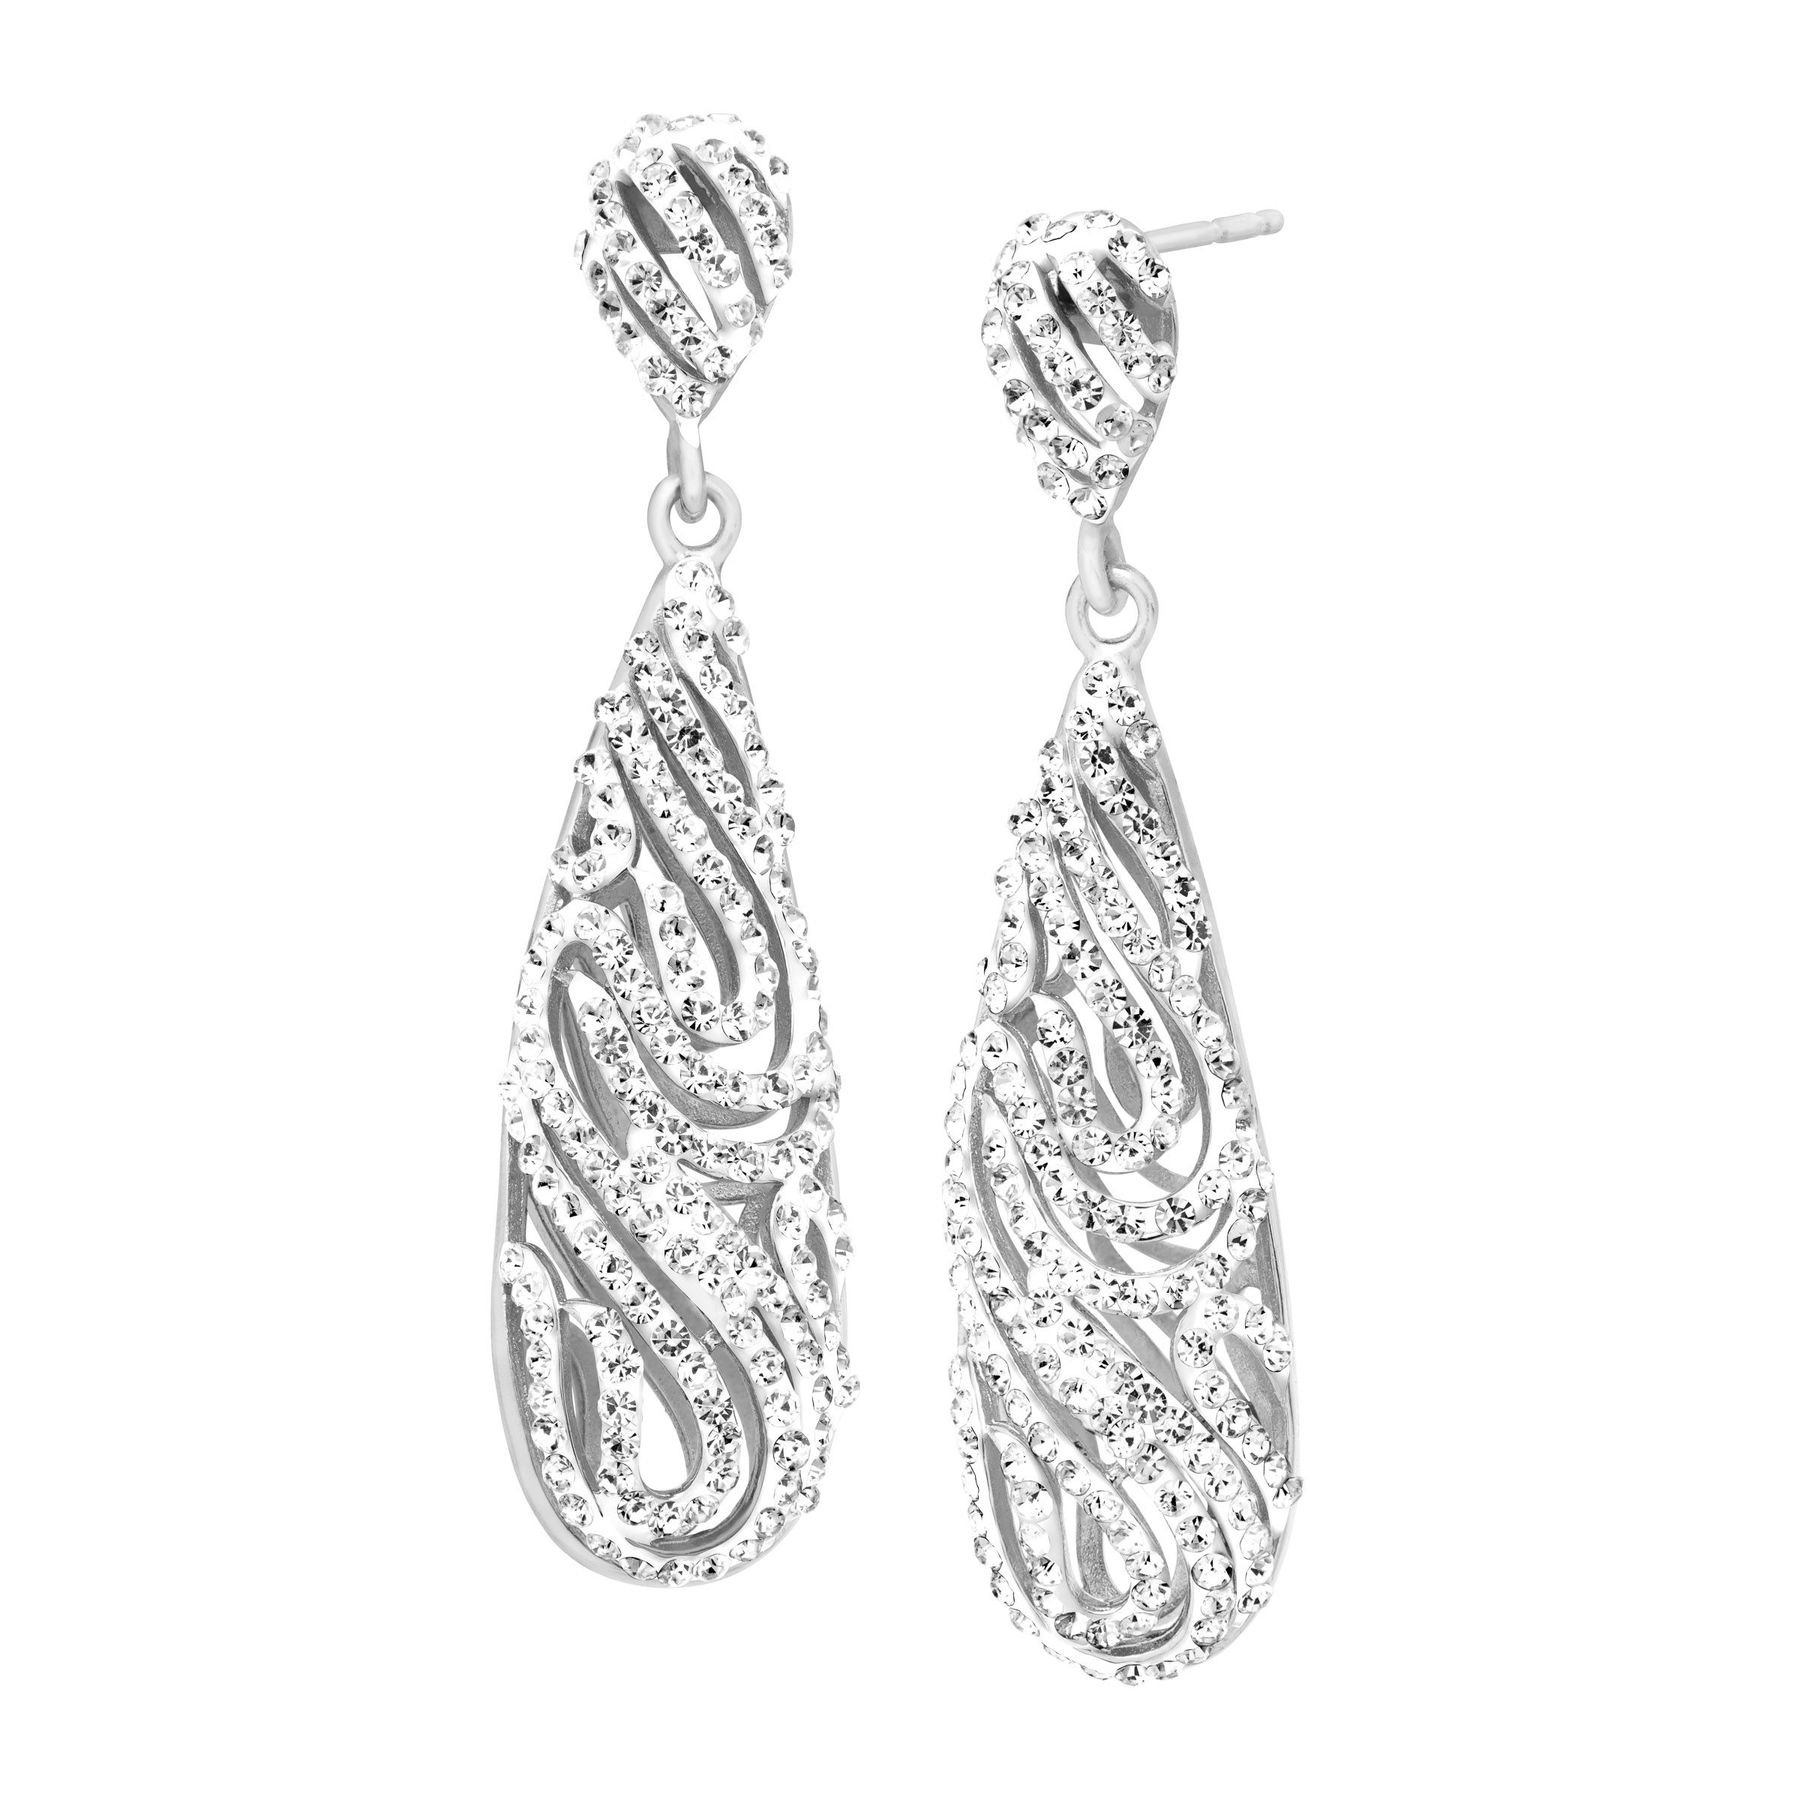 2259ebafa Uhren & Schmuck Crystaluxe Drop Earrings with Swarovski Crystals in  Sterling Silver